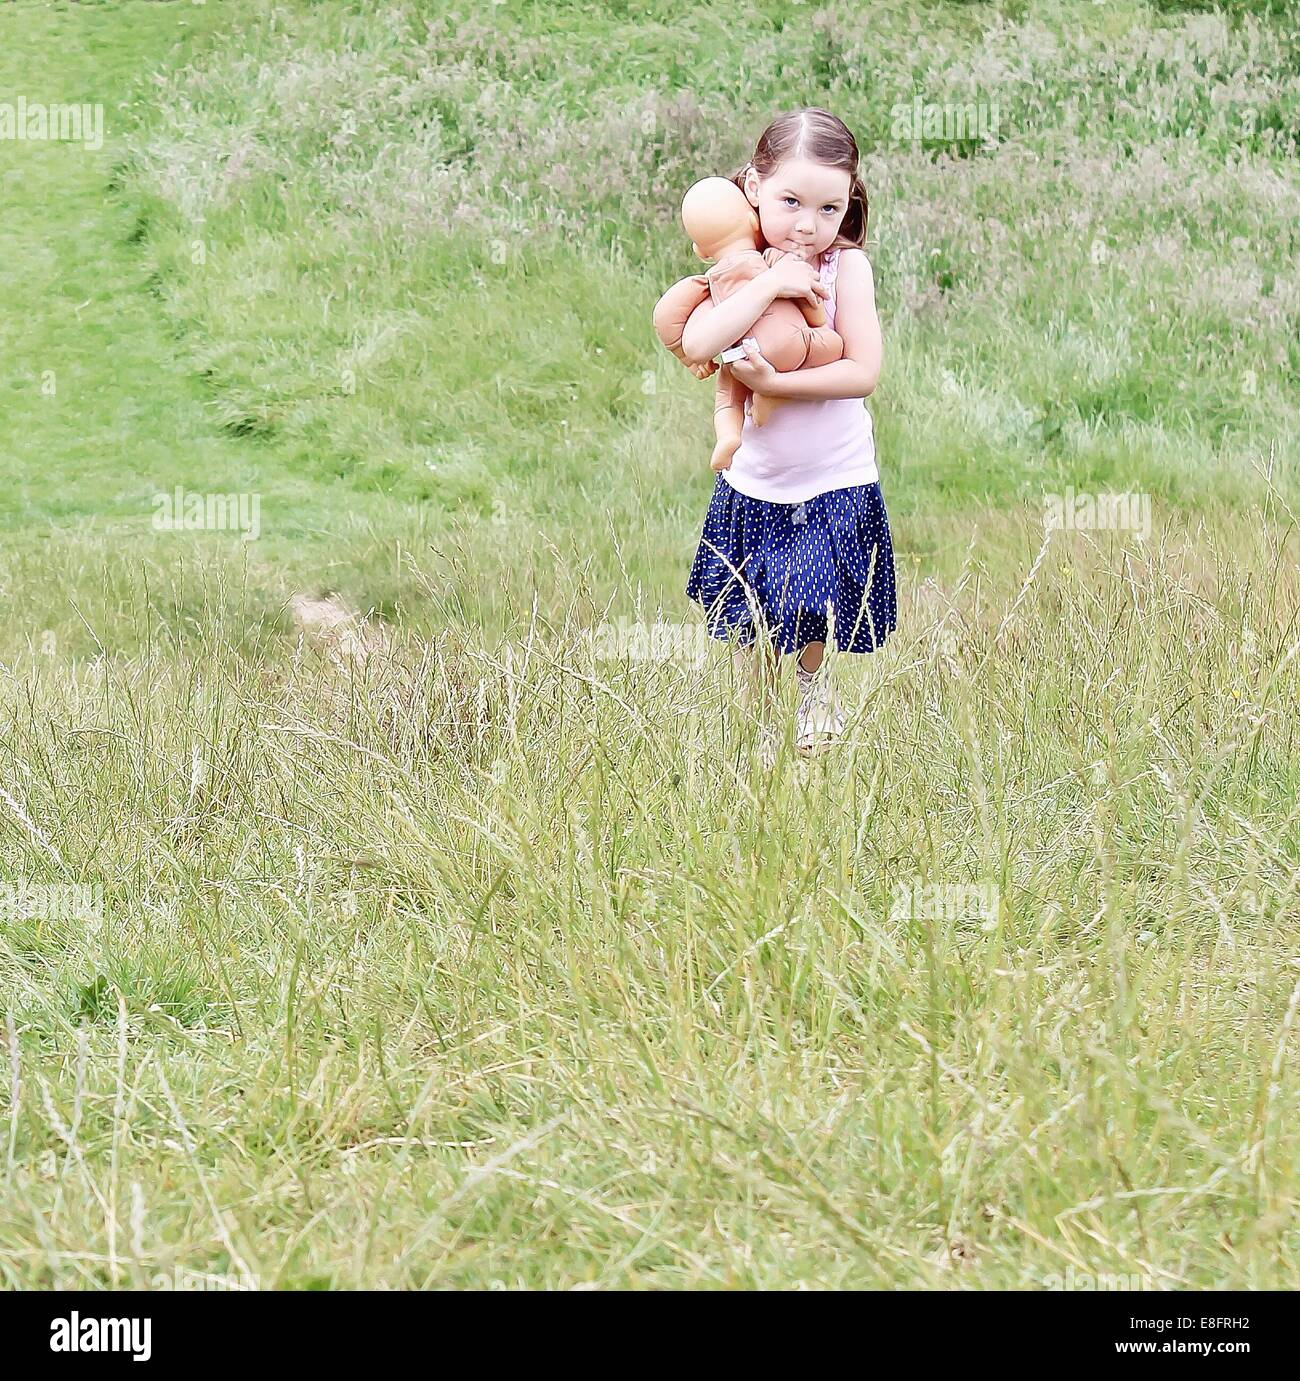 Girl walking through field carrying her doll Stock Photo